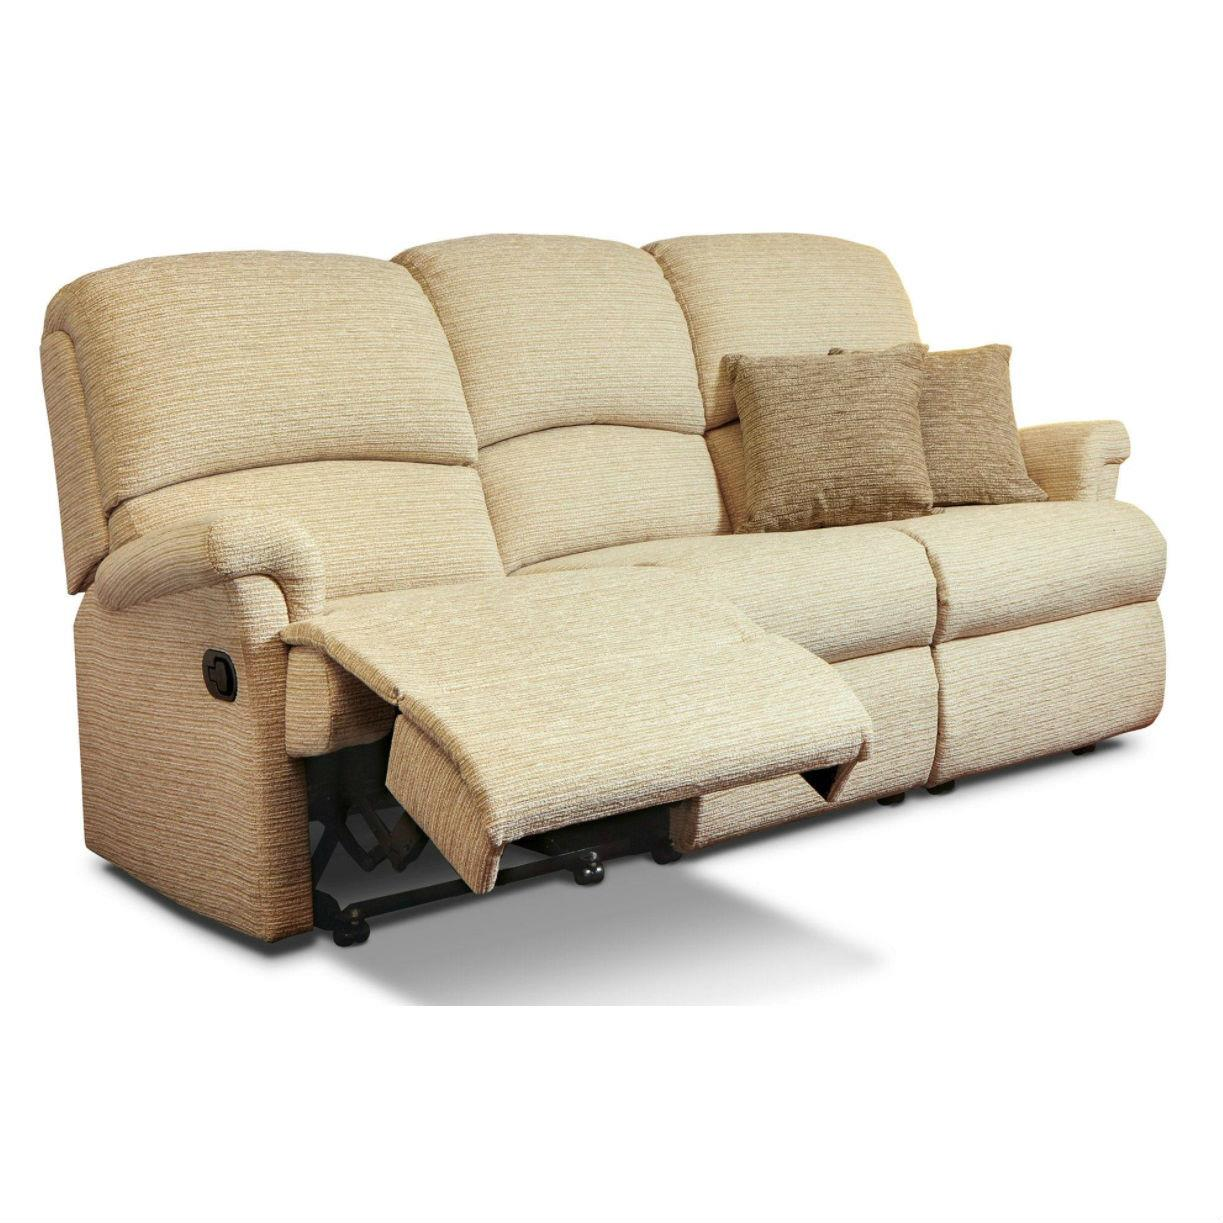 Peachy Sherborne Nevada Reclining 3 Seater Sofa Fabric From Ocoug Best Dining Table And Chair Ideas Images Ocougorg